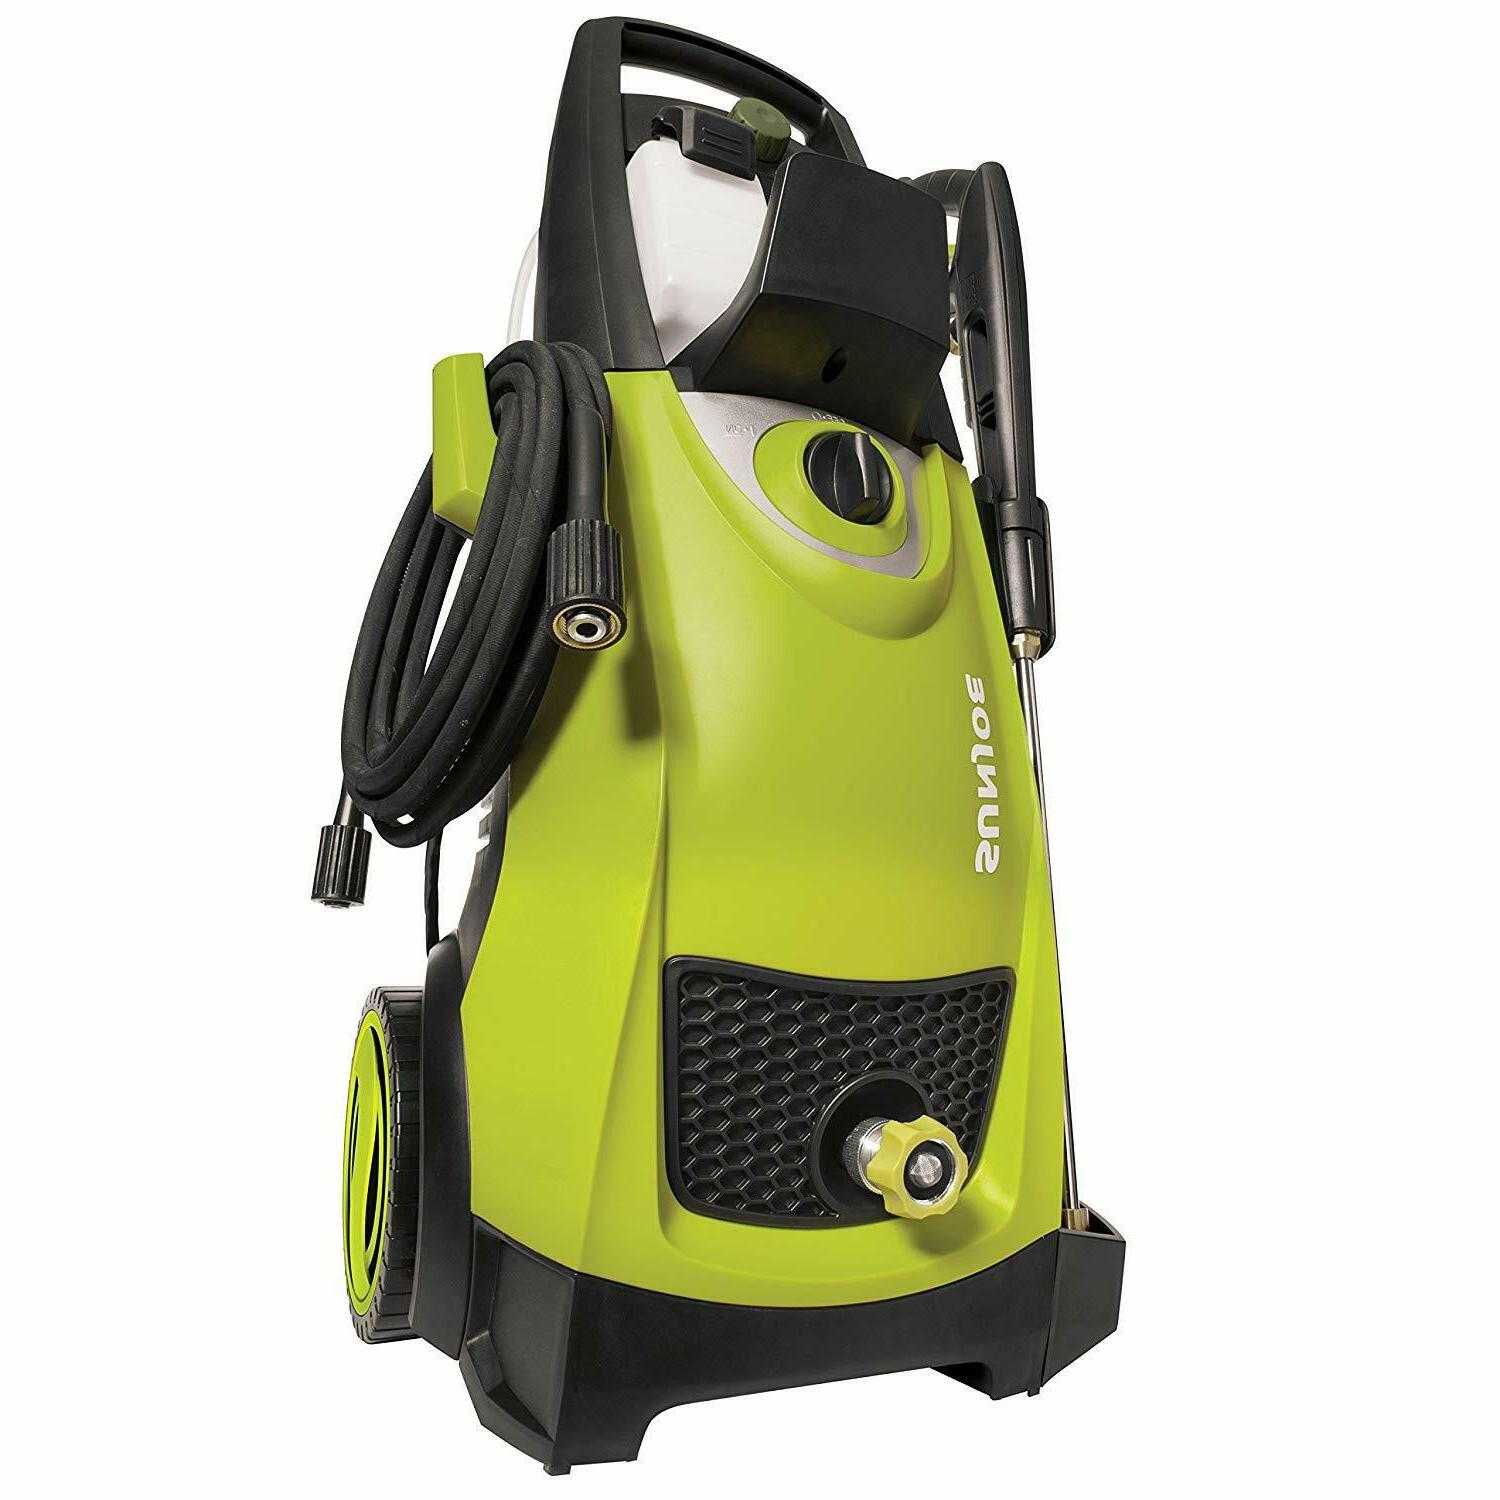 Sun Joe Pressure Washer PSI 1.76 GPM 14.5-Amp With NEW